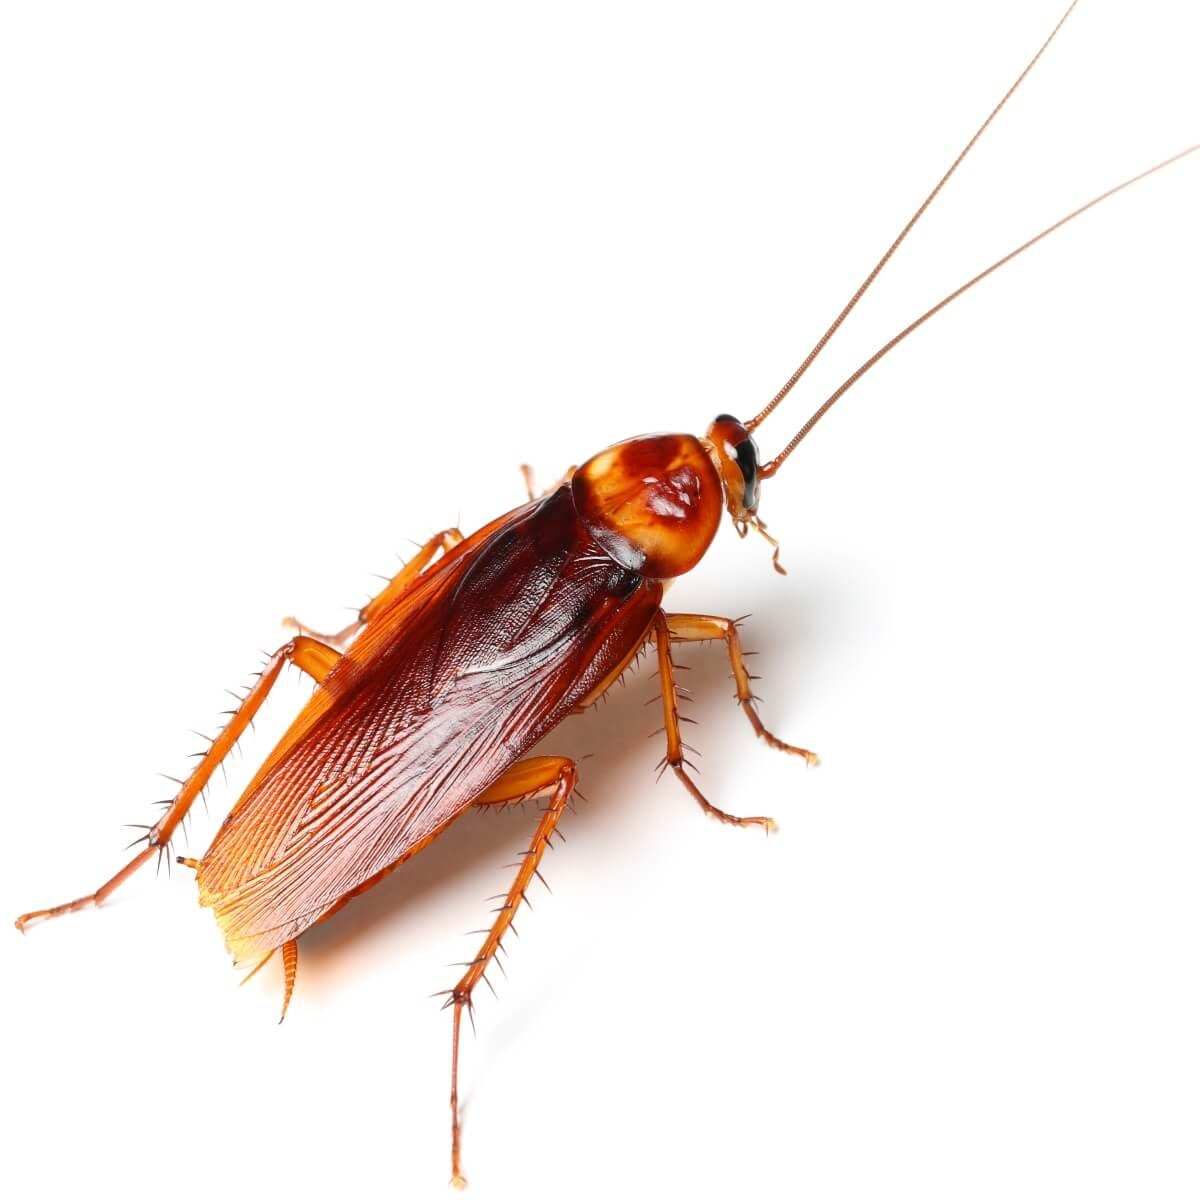 12 Interesting Cockroach Facts: Name, Body, And Behaviors